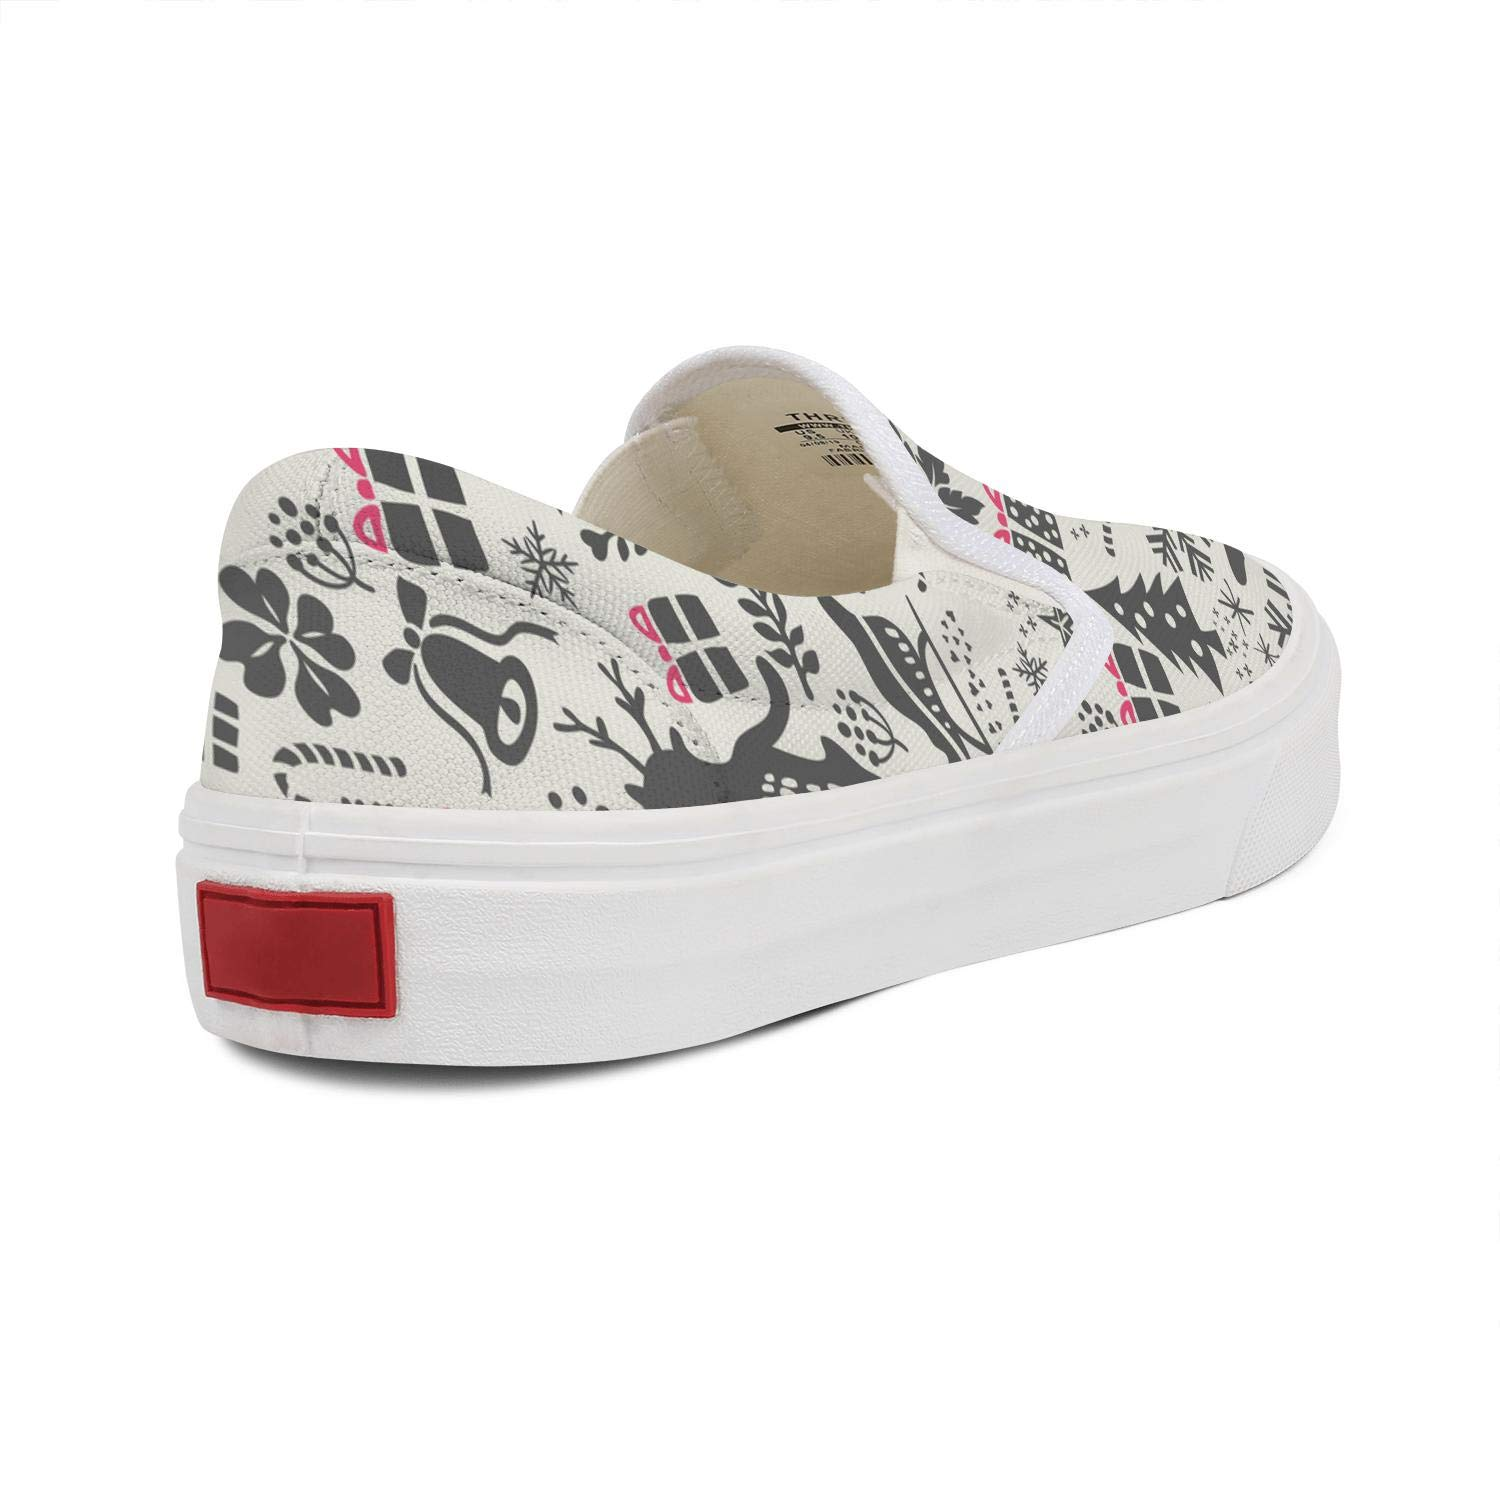 Womens Christmas Style Canvas Sneakers Flat Bottom Non-Slip Beautiful Sports Shoes